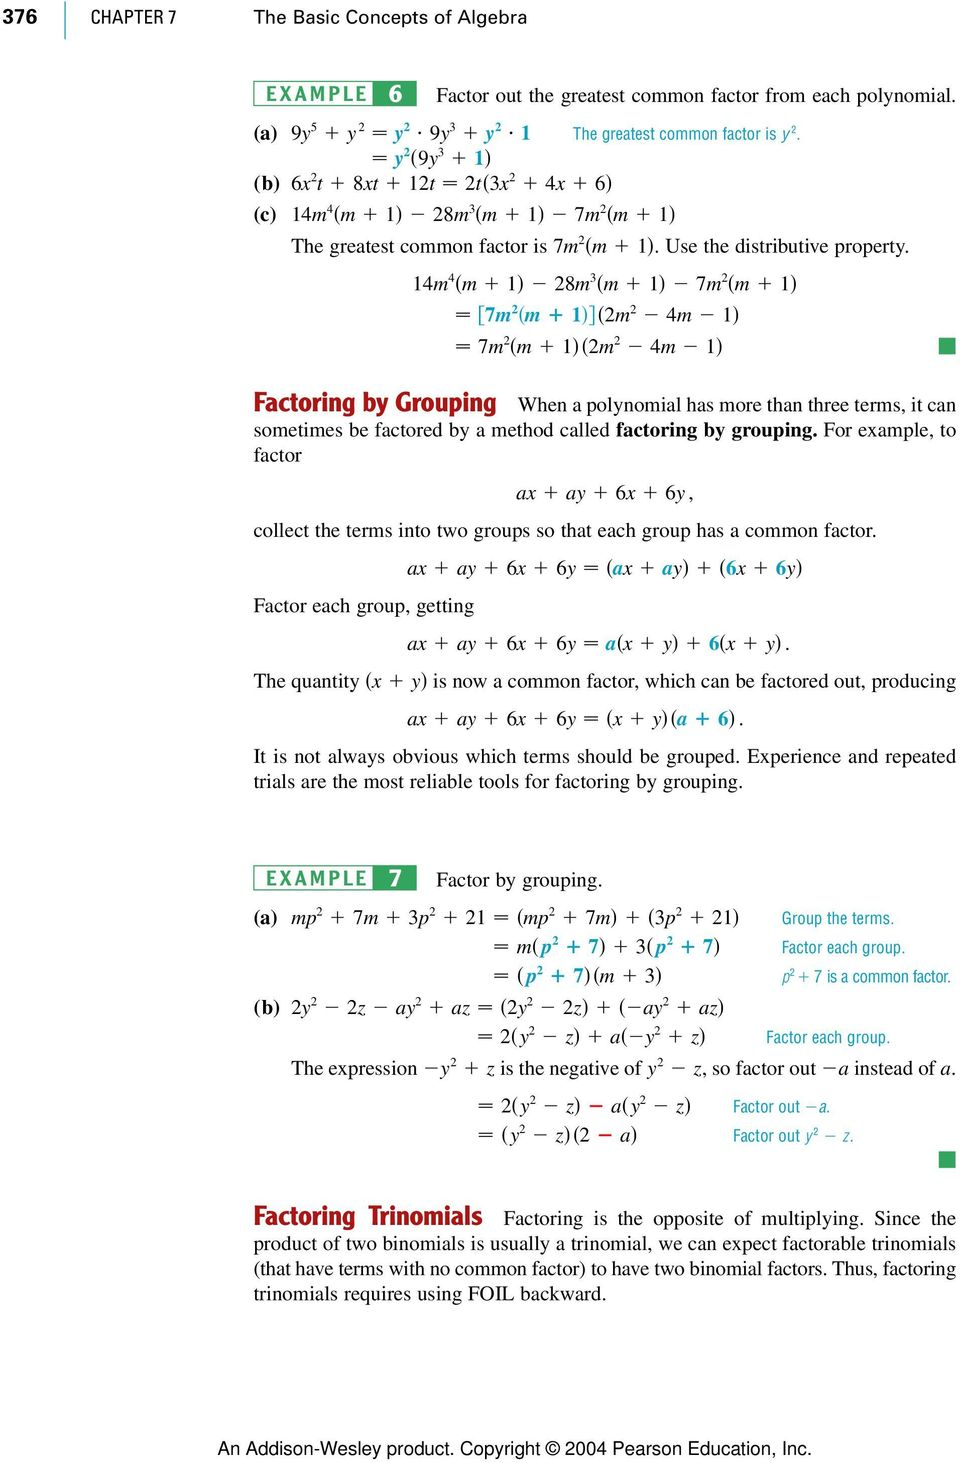 14m 4 m 1 28m 3 m 1 7m 2 m 1 7m 2 m 12m 2 4m 1 7m 2 m 12m 2 4m 1 Factoring by Grouping When a polynomial has more than three terms, it can sometimes be factored by a method called factoring by